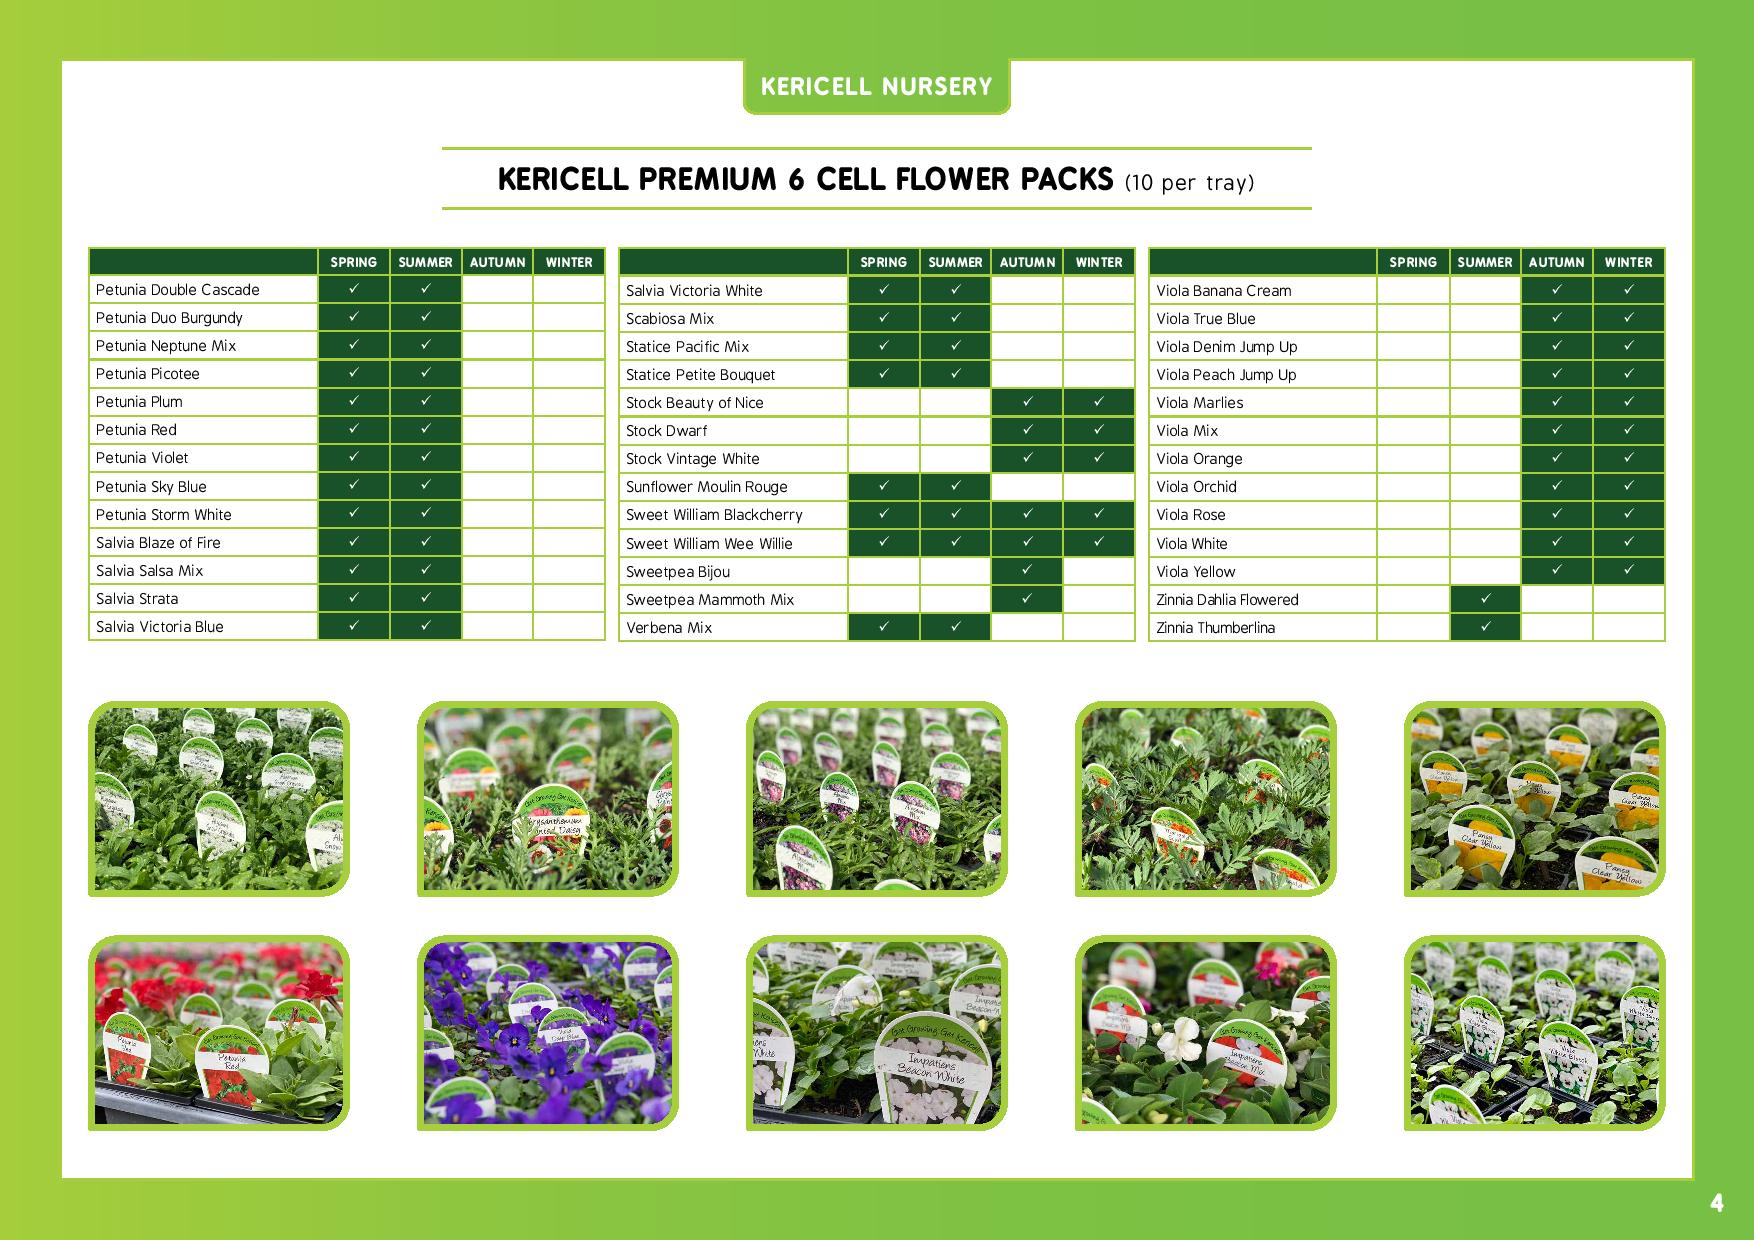 Kericell_Plant Catalogue V7-page-004